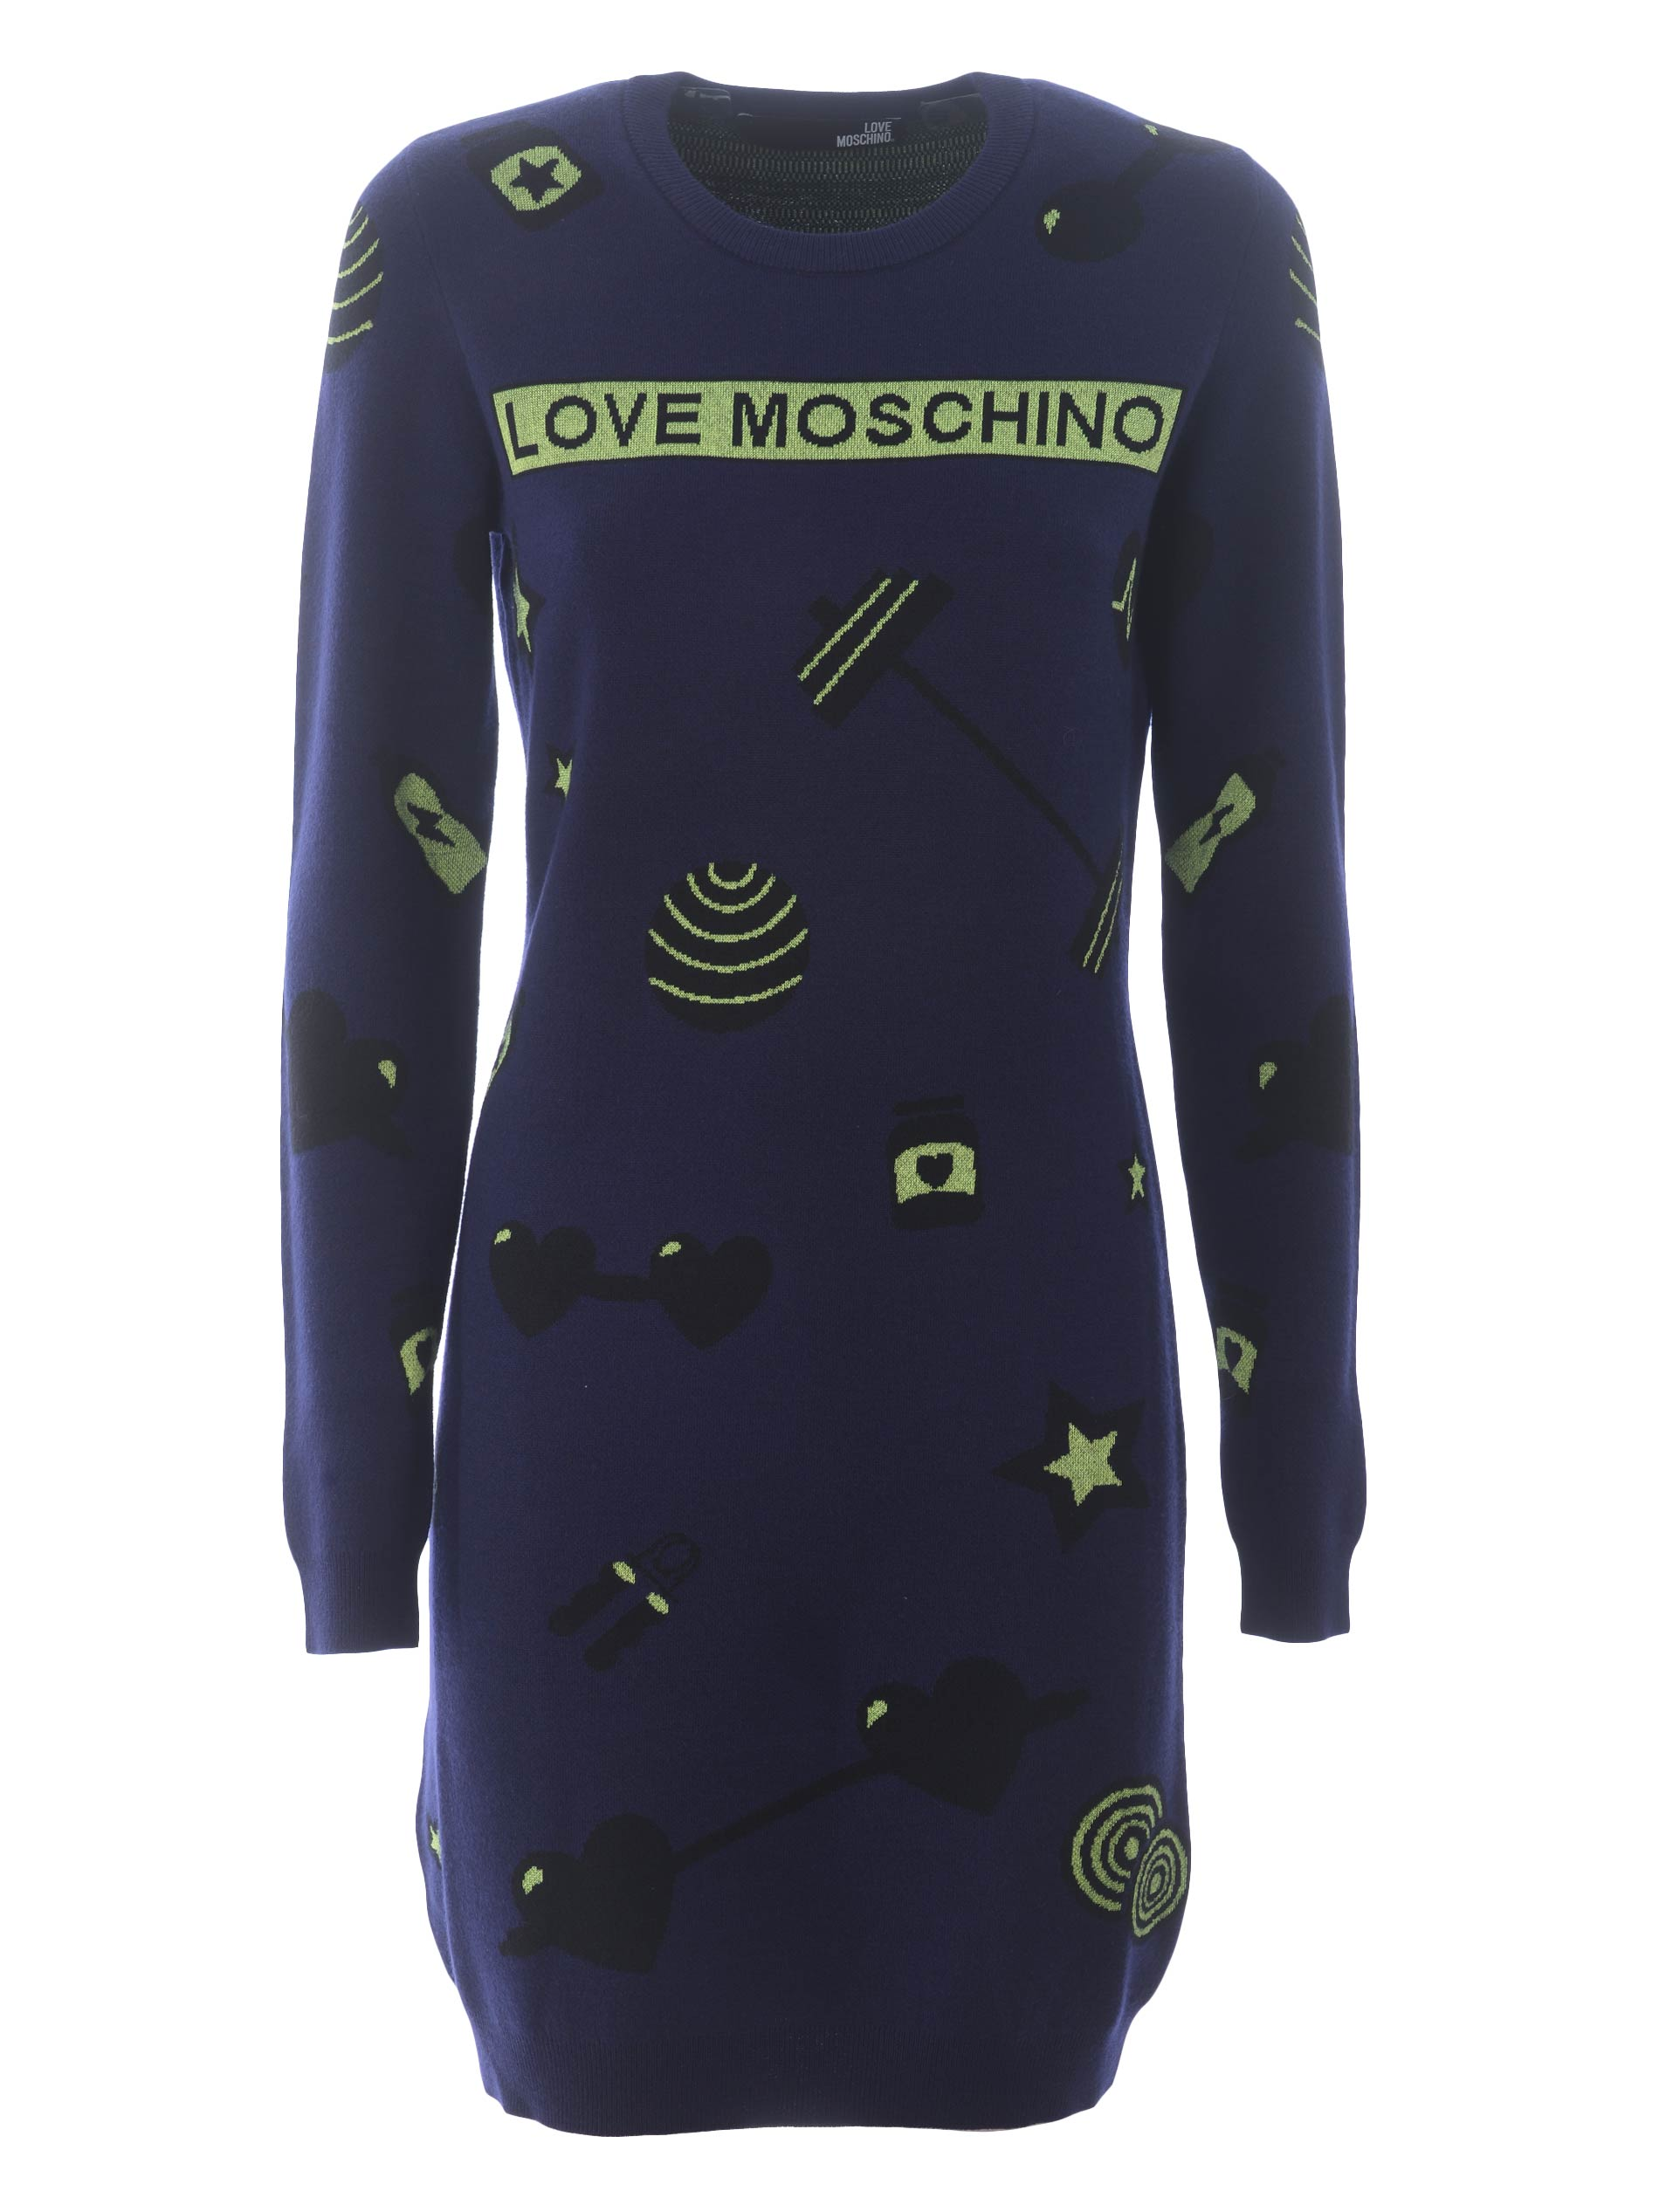 Love moschino dress in viscose and wool blend